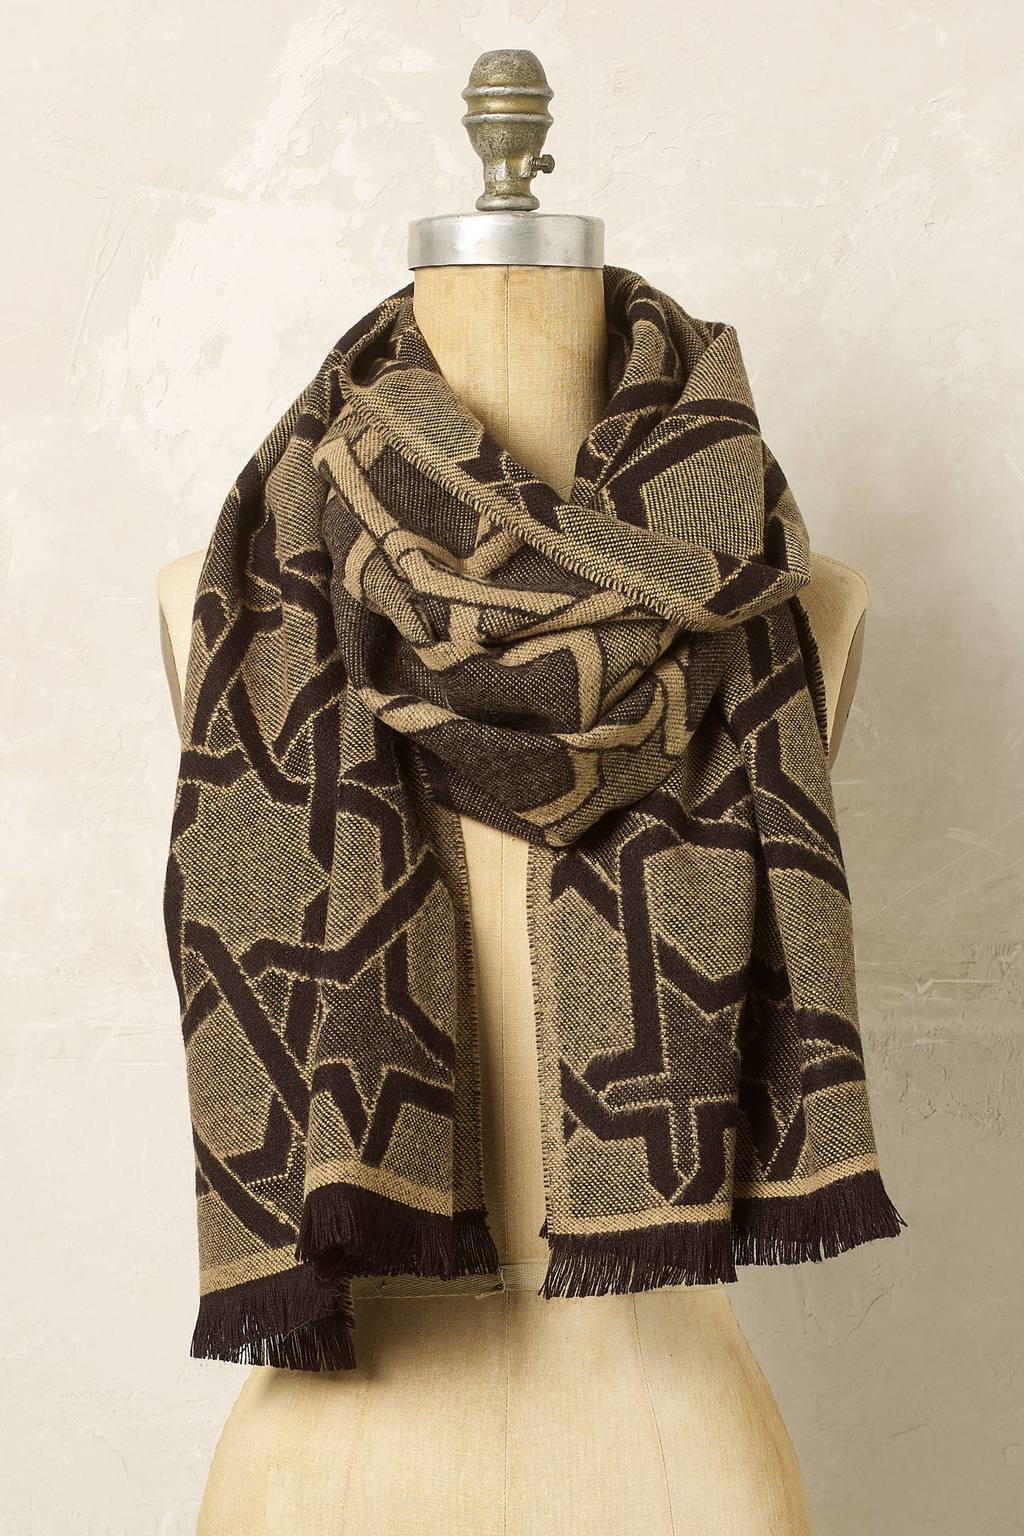 Kiya Star Print Scarf - predominant colour: camel; occasions: casual; type of pattern: heavy; style: wrap; size: large; material: fabric; pattern: patterned/print; season: a/w 2016; wardrobe: highlight